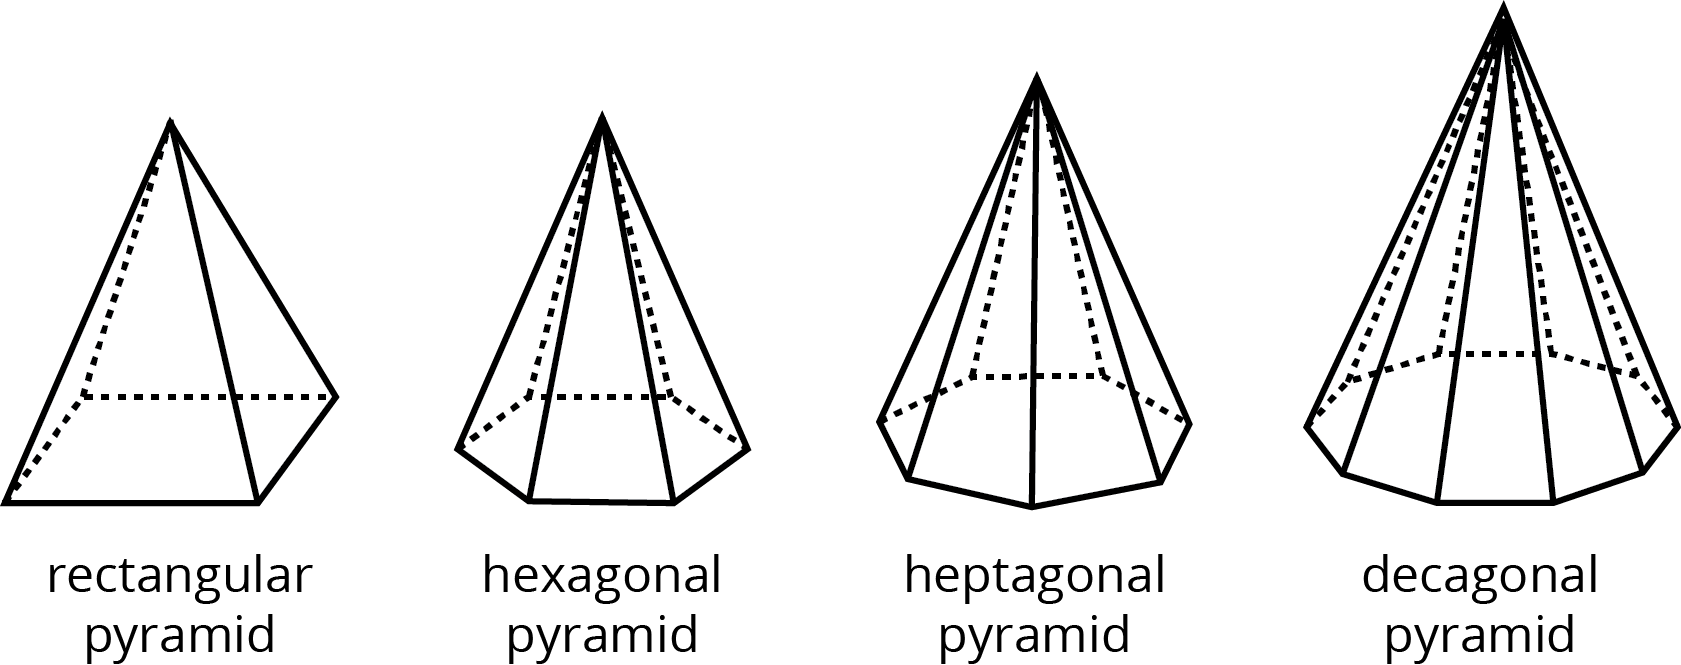 A rectangular pyramid, a hexagonal pyramid, a heptagonal pyramid, and a decagonal pyramid.